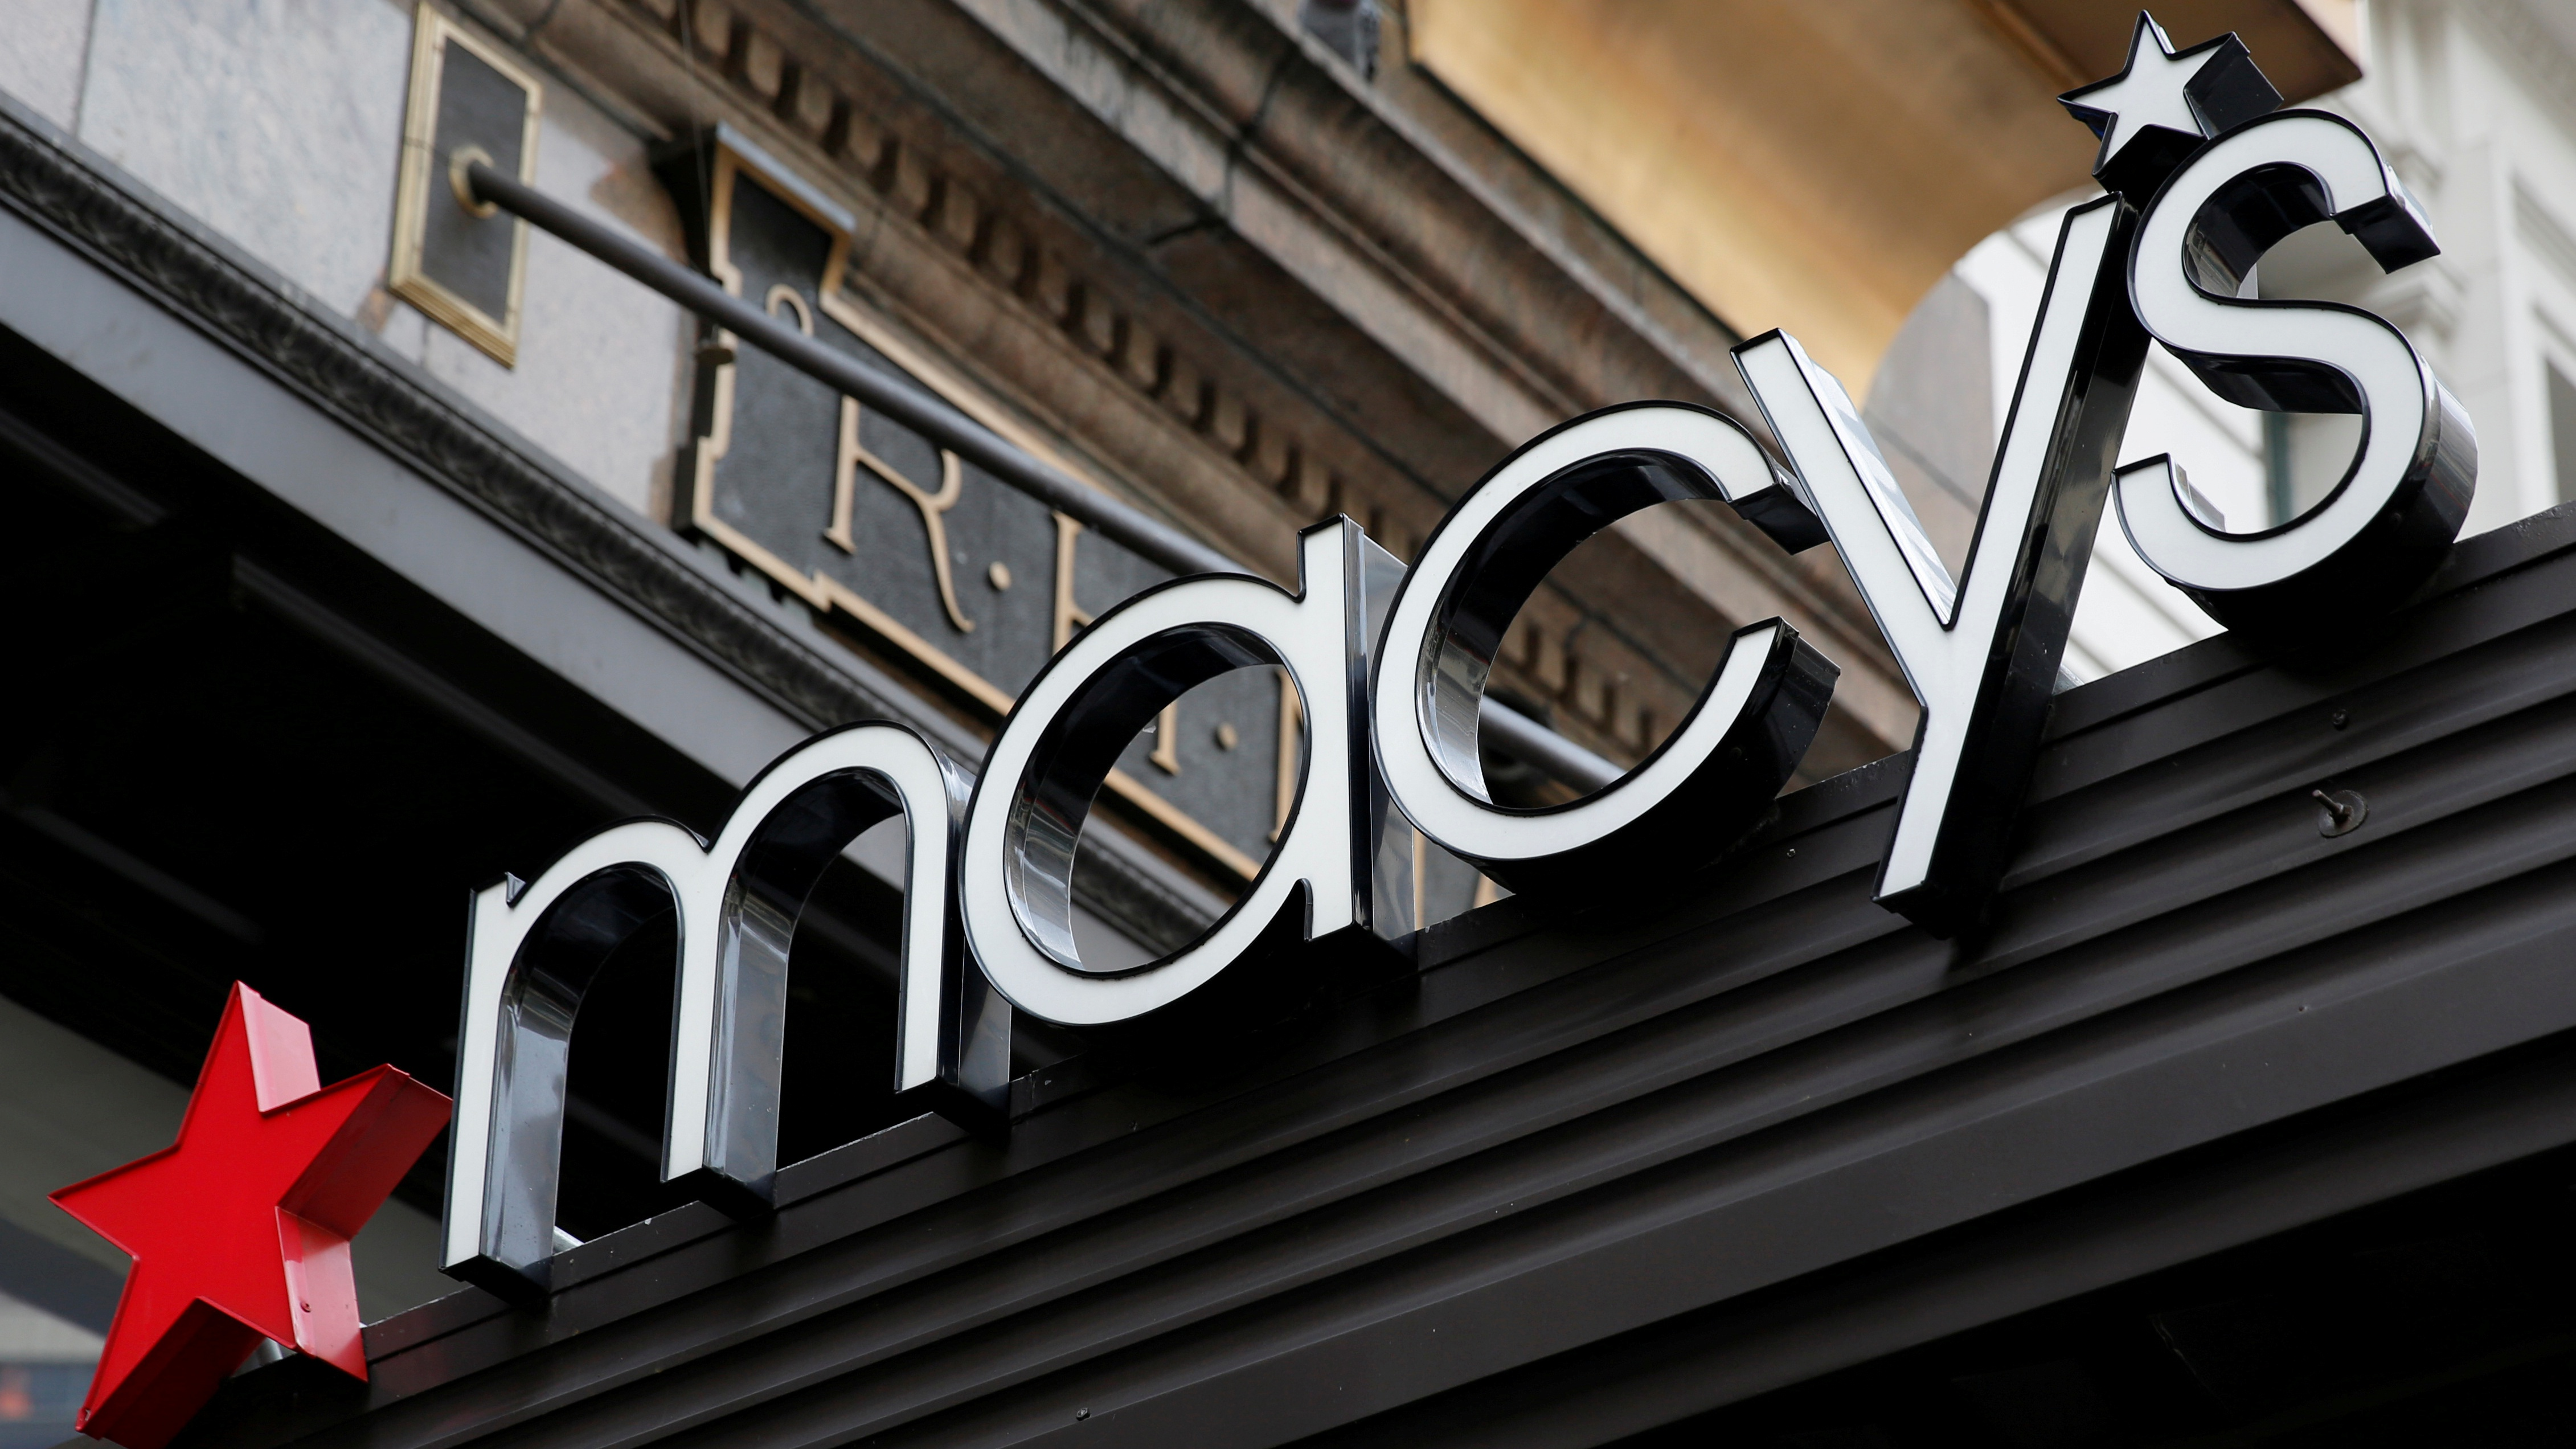 """A sign that marks the Macy's store is seen at the Herald Square location in New York, U.S., May 9, 2016. REUTERS/Shannon Stapleton/File Photo GLOBAL BUSINESS WEEK AHEAD PACKAGE - SEARCH """"BUSINESS WEEK AHEAD AUG 8"""" FOR ALL IMAGES?"""